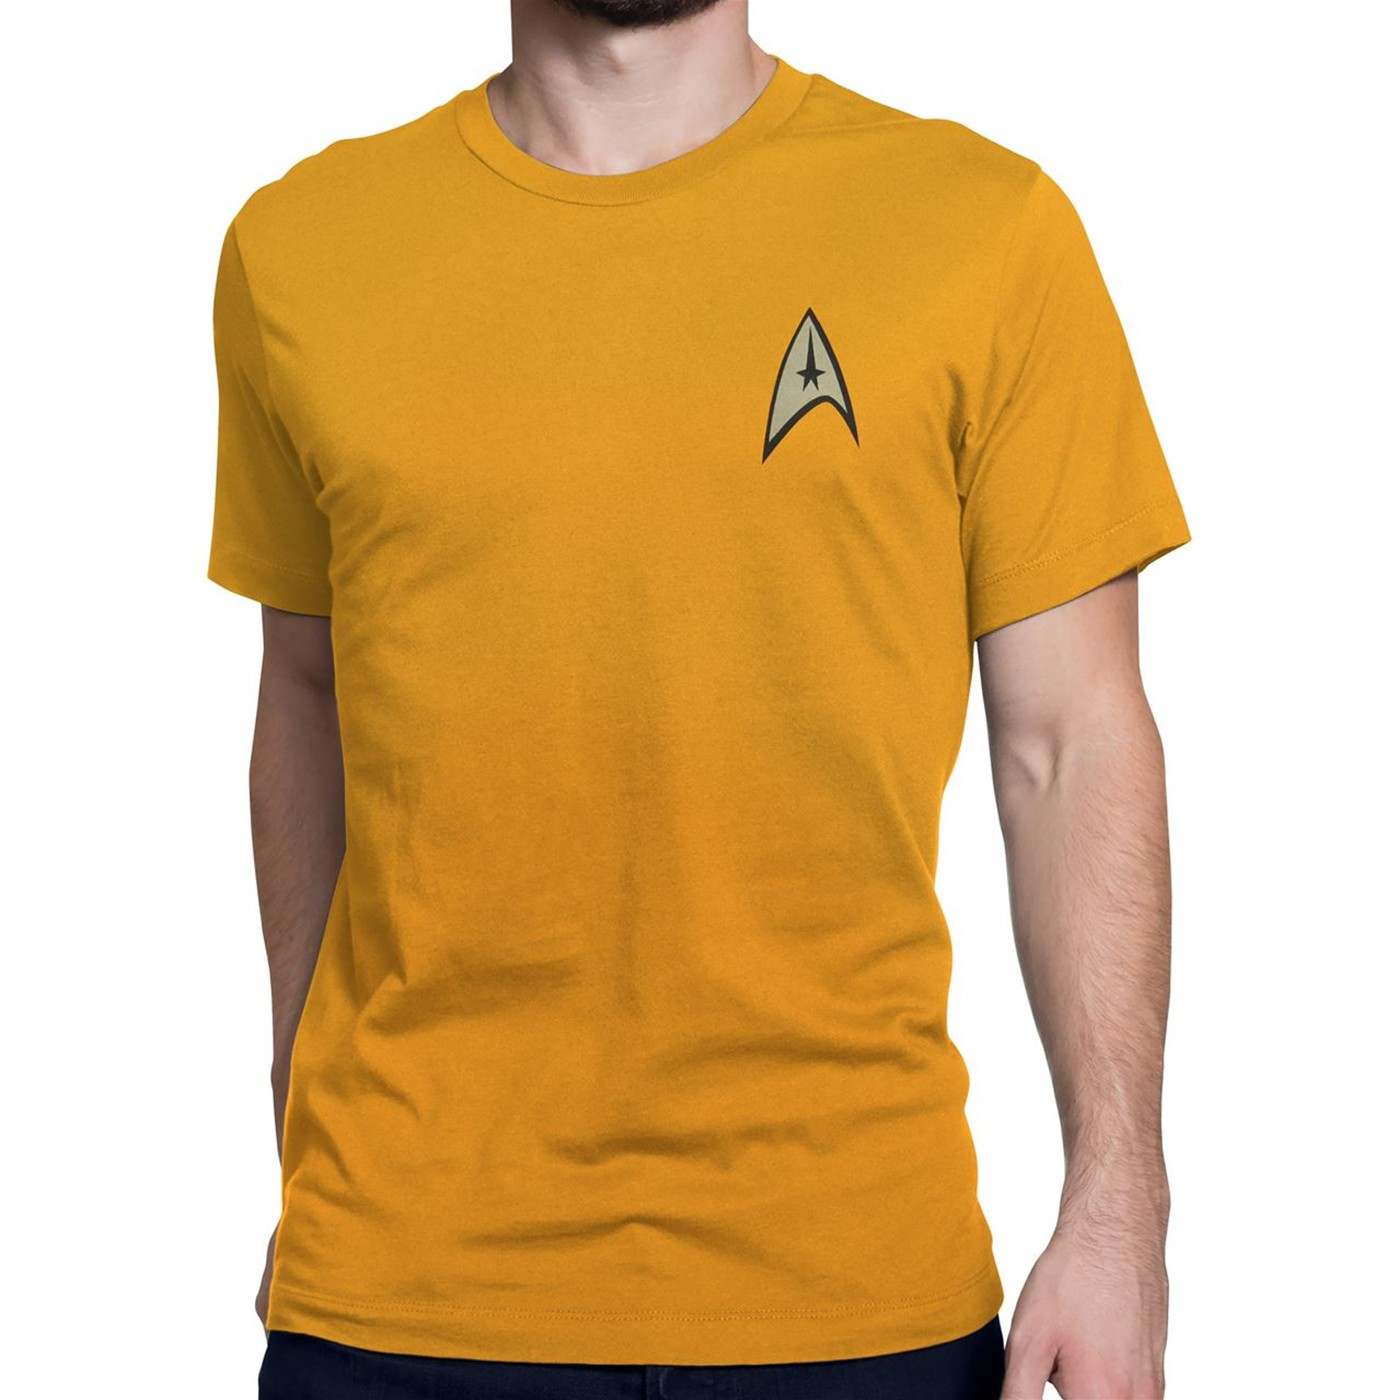 Star Trek Command Uniform T-Shirt